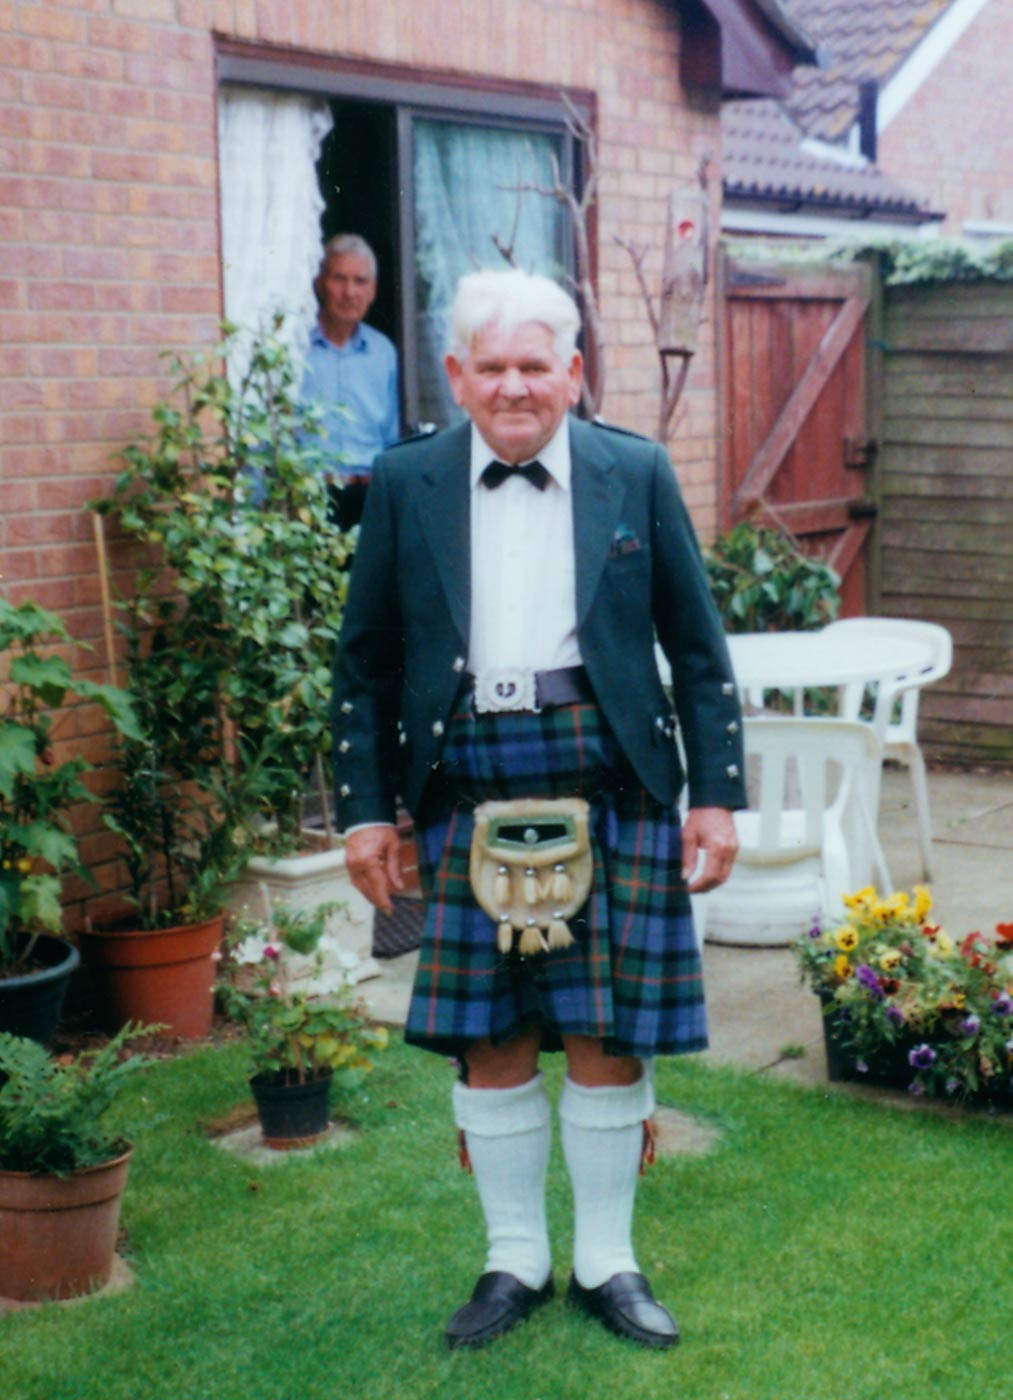 Colour photograph of a man standing in a garden outside a house. He wears traditional Scottish dress of a tartan kilt, sporran and tailored jacket. - click to view larger image